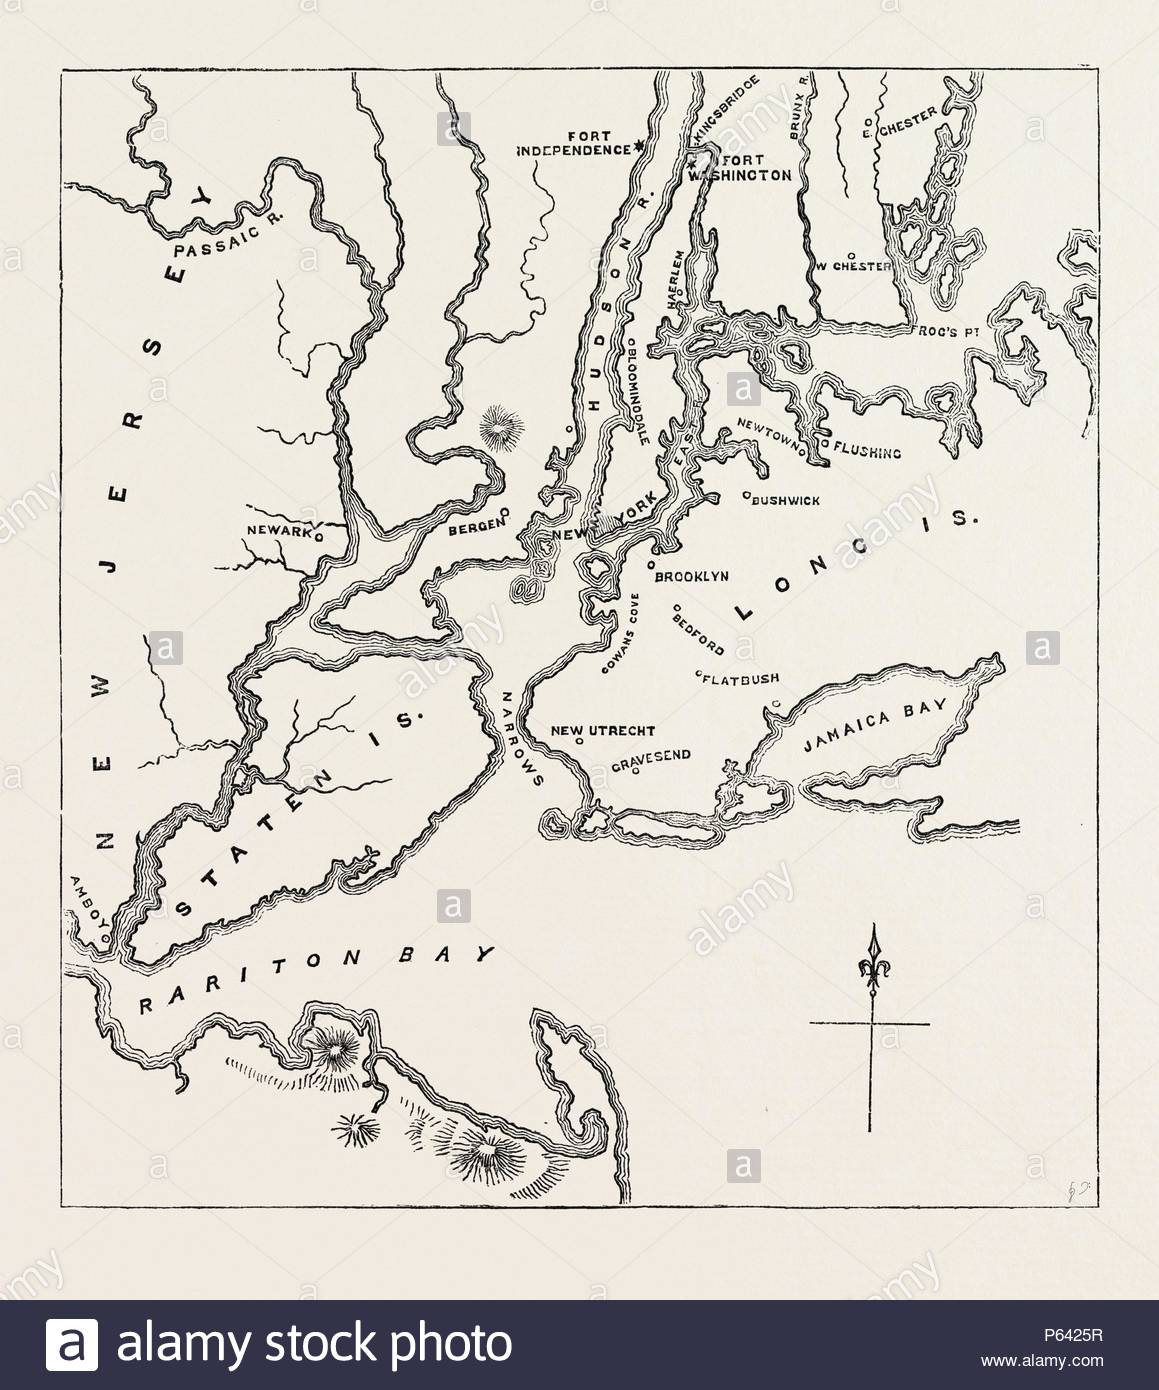 Map Of New York And Vicinity 1776 United States Of America Us